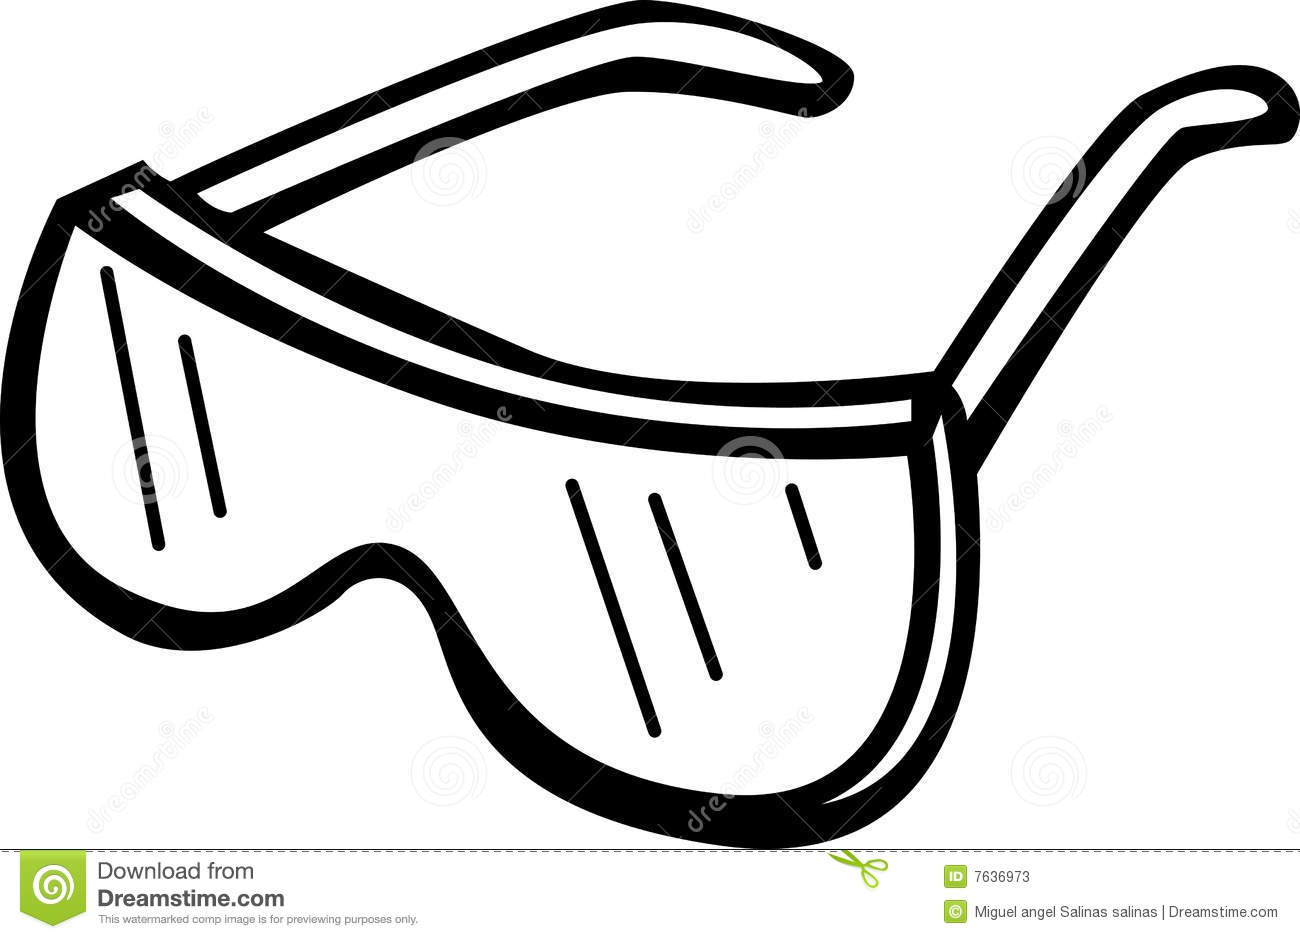 Spectacles clipart goggle Best on Pinterest http://thumbs Images